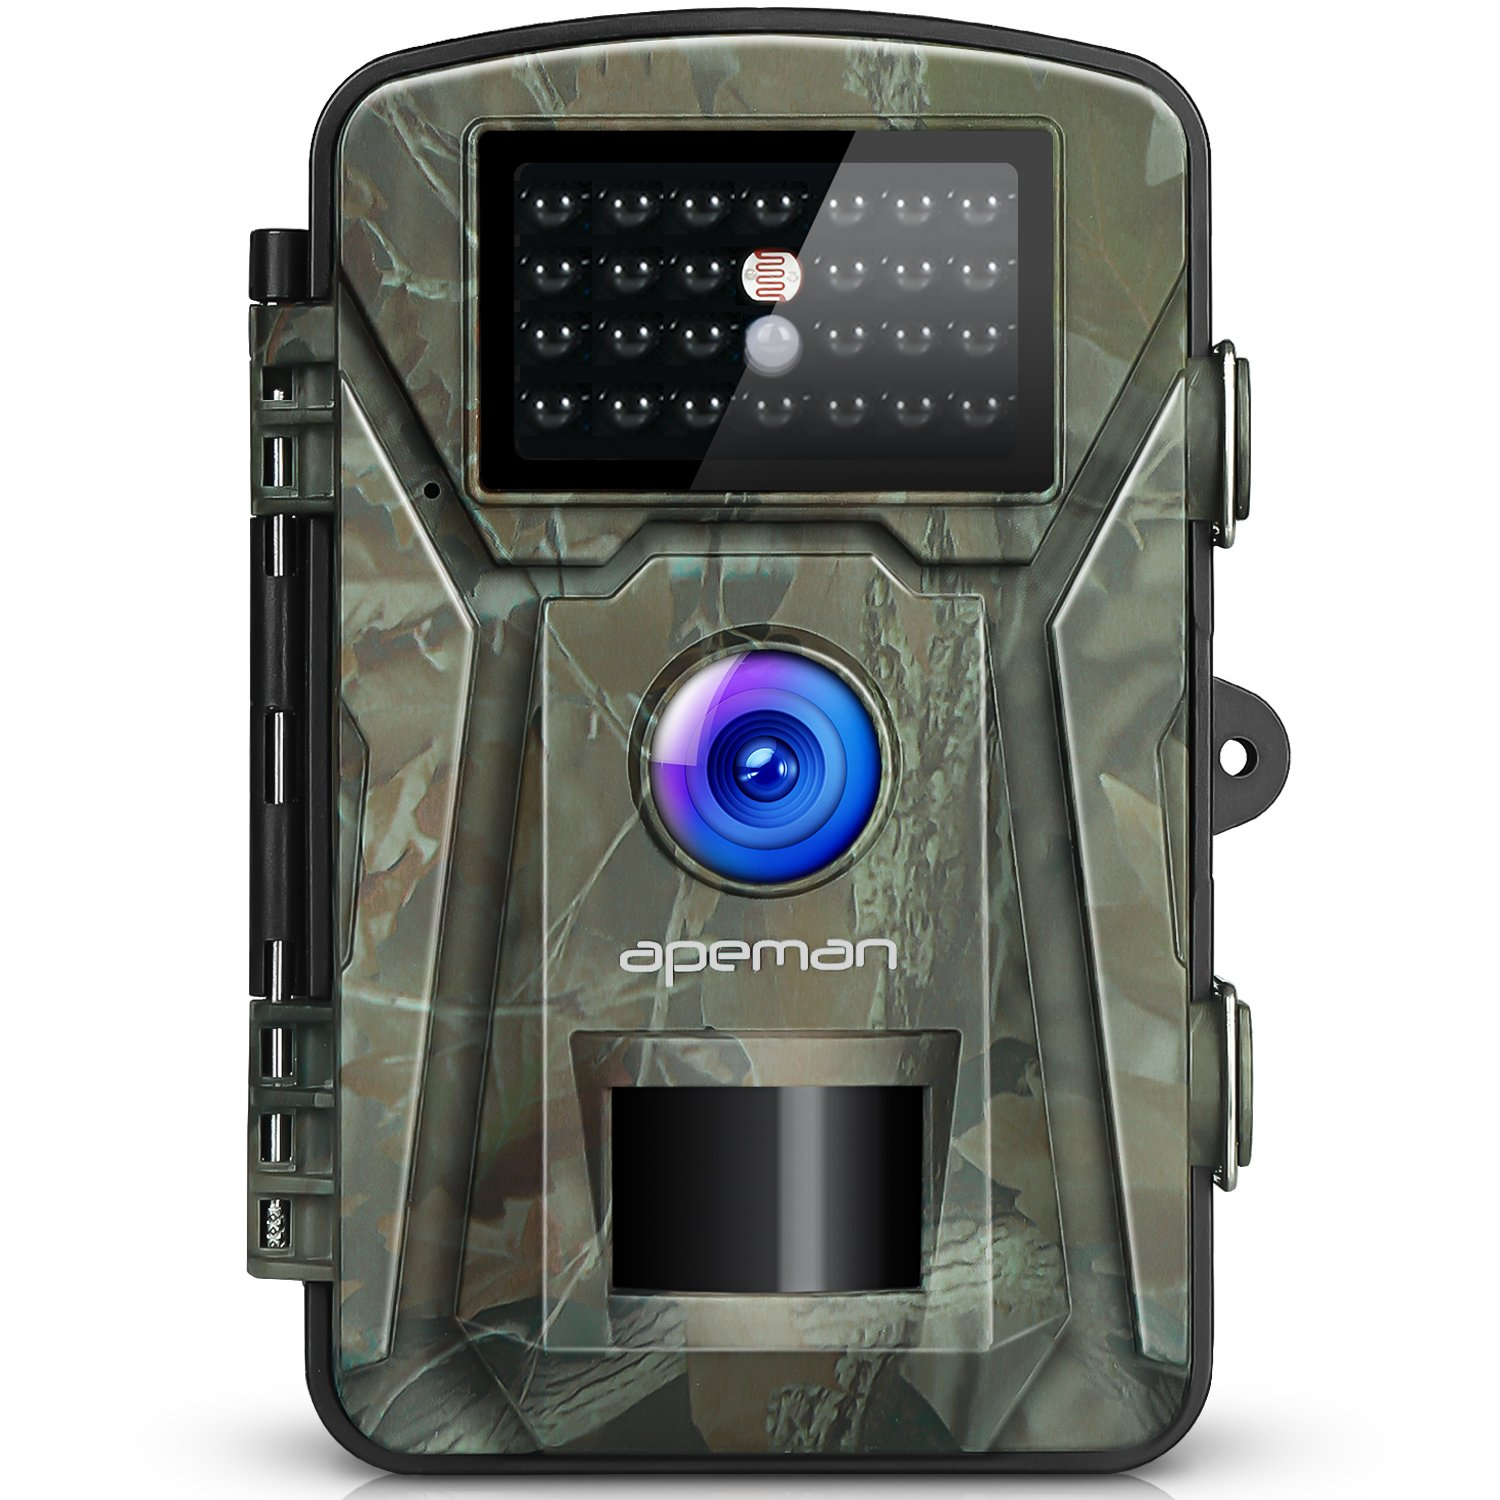 【NEW VERSION】APEMAN Trail Camera 12MP 1080P 2.4'' LCD Game&Hunting Camera with 940nm Upgrading IR LEDs Night Vision up to 65ft/20m IP66 Spray Water Protected Design